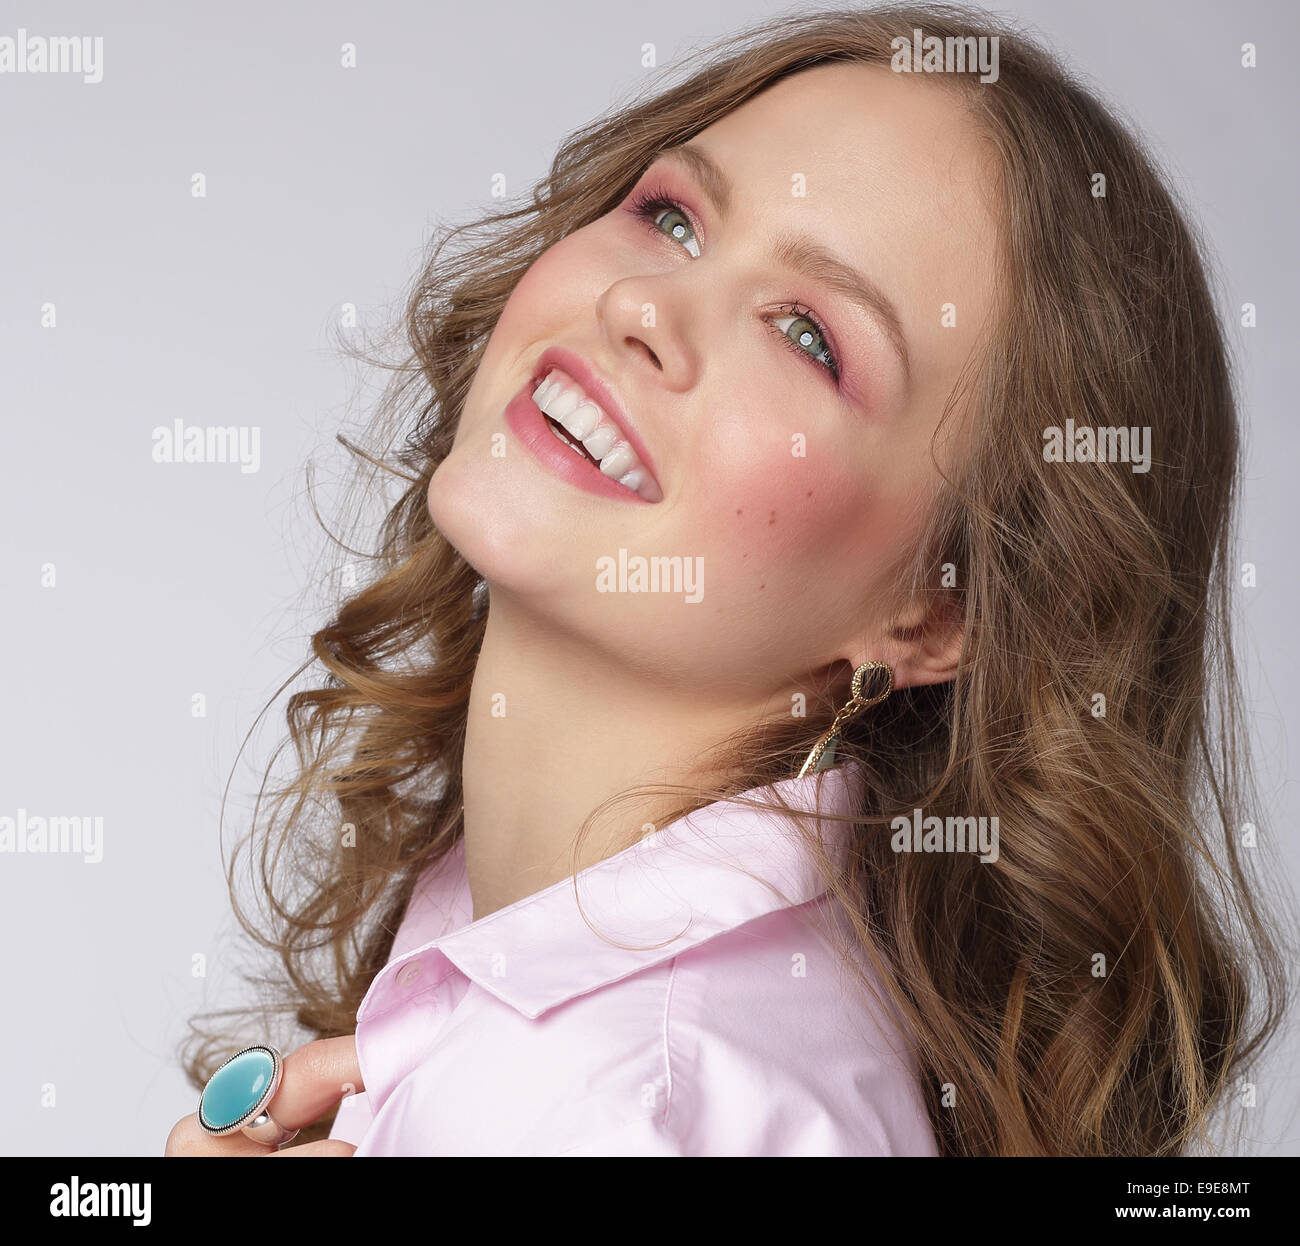 Positive Emotions. Delighted Attractive Woman Looking Up - Stock Image